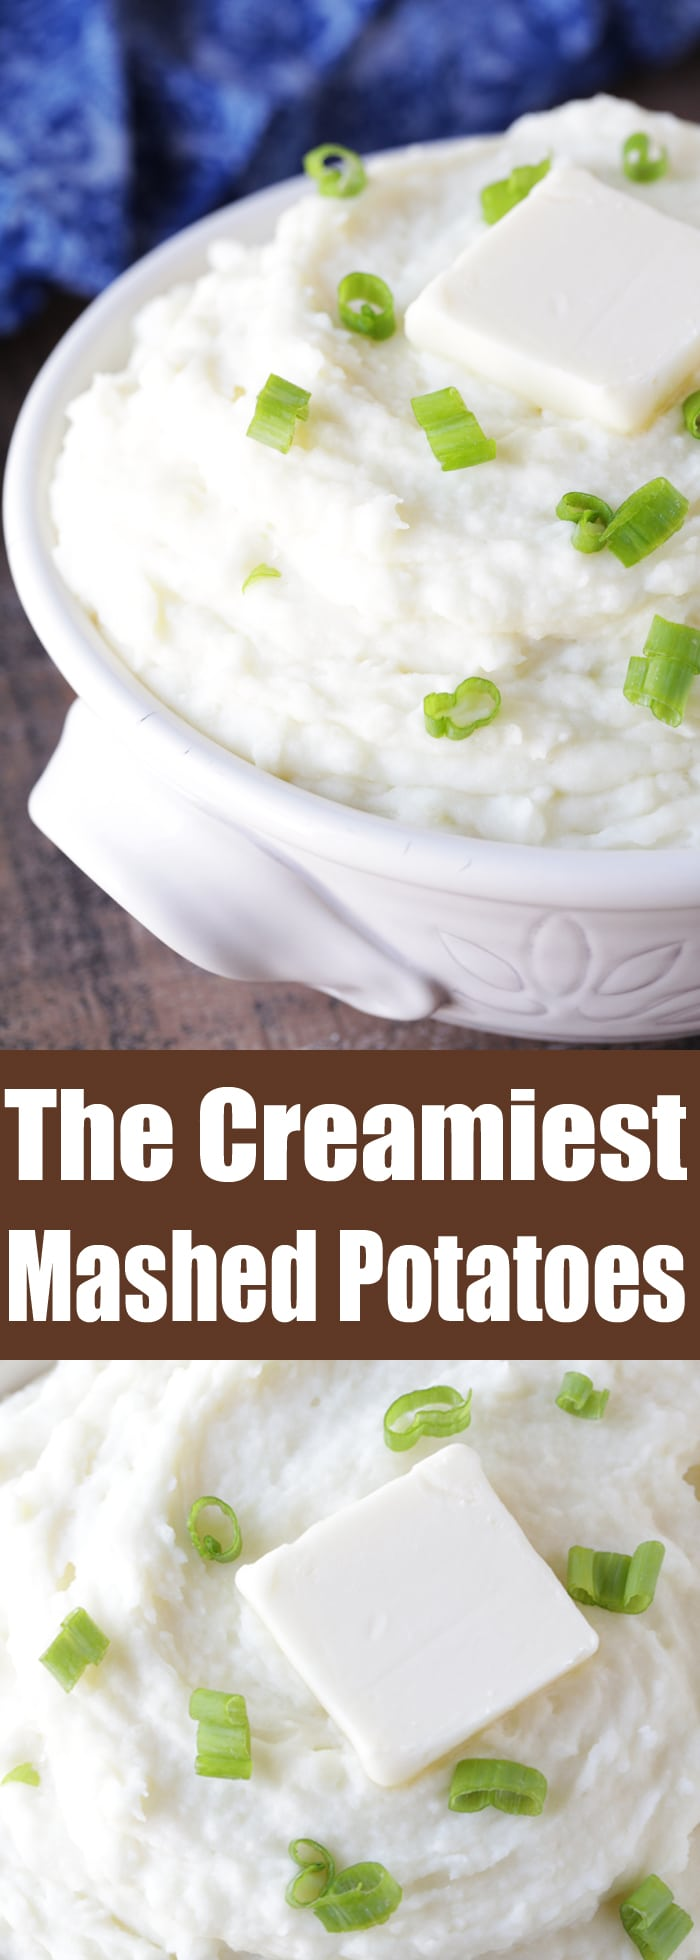 Make sure everyone at your dinner table raves about how yours are the creamiest mashed potatoes ever! This recipe is perfect for the holidays as well as your regular weeknight dinners.